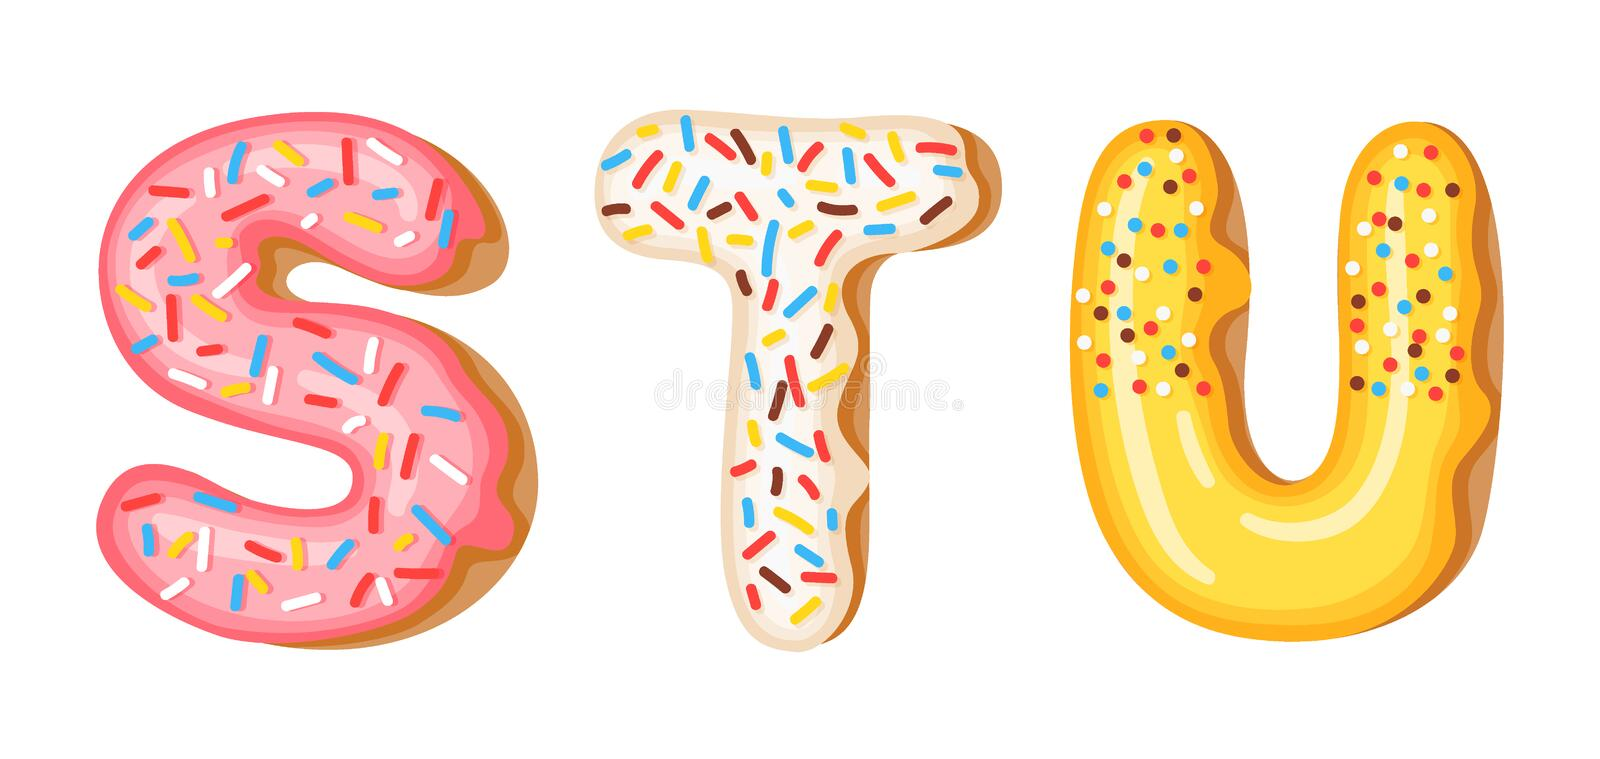 Donut icing upper latters - S, T, U. Font of donuts. Bakery sweet alphabet. Donut alphabet latters A b C isolated on. White background, vector illustration vector illustration